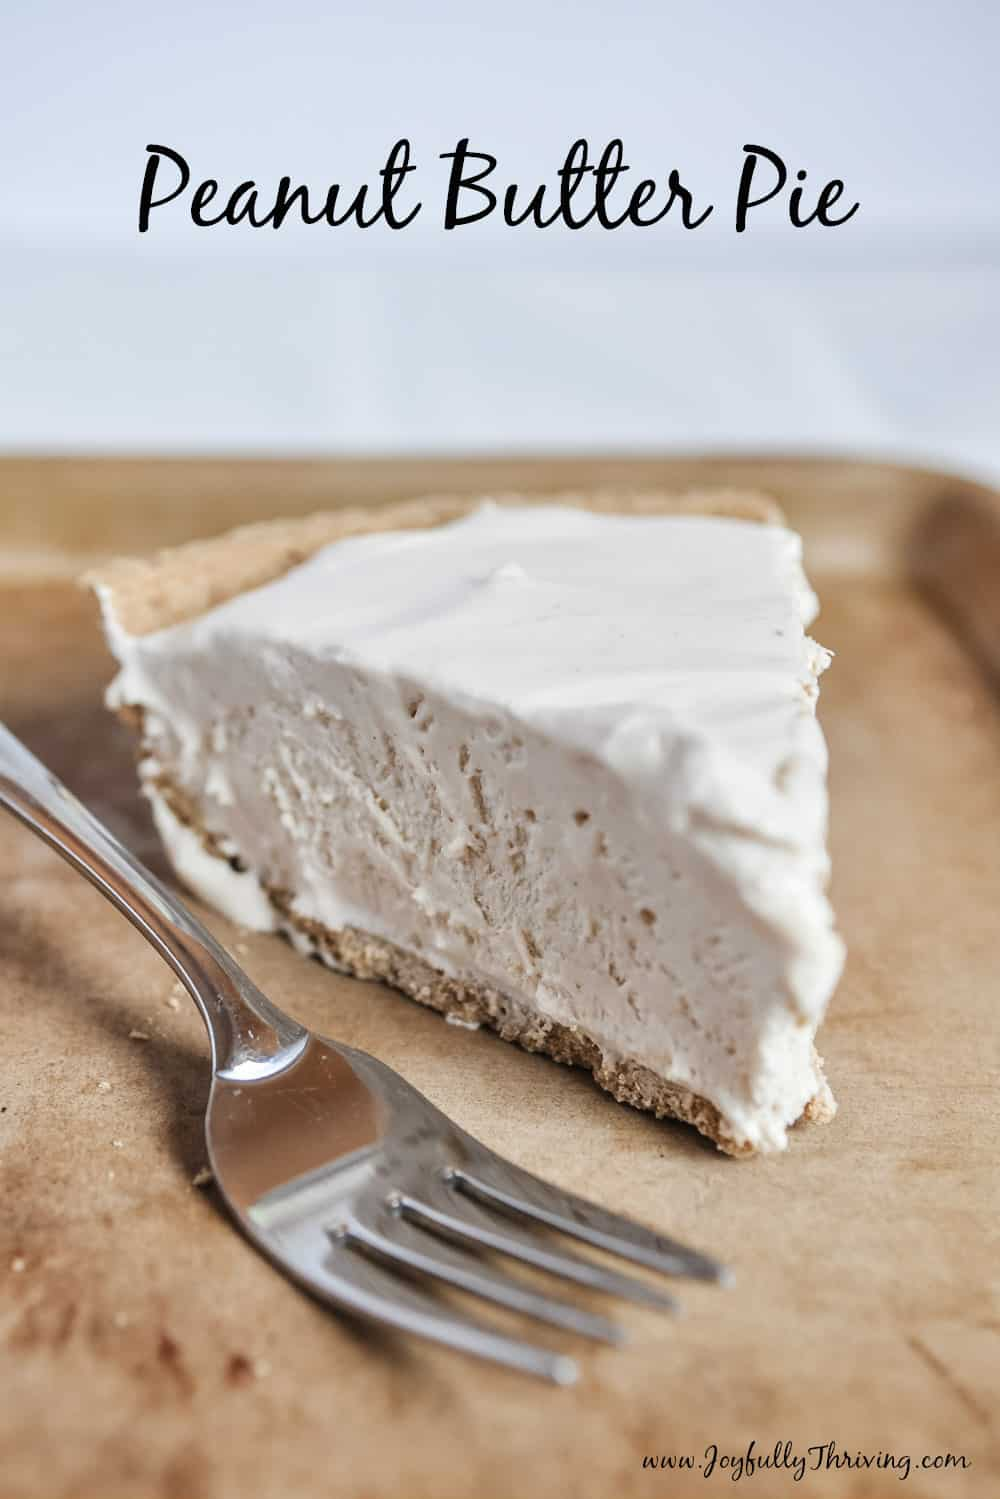 Easy, Frozen Peanut Butter Pie You Can Make in Minutes